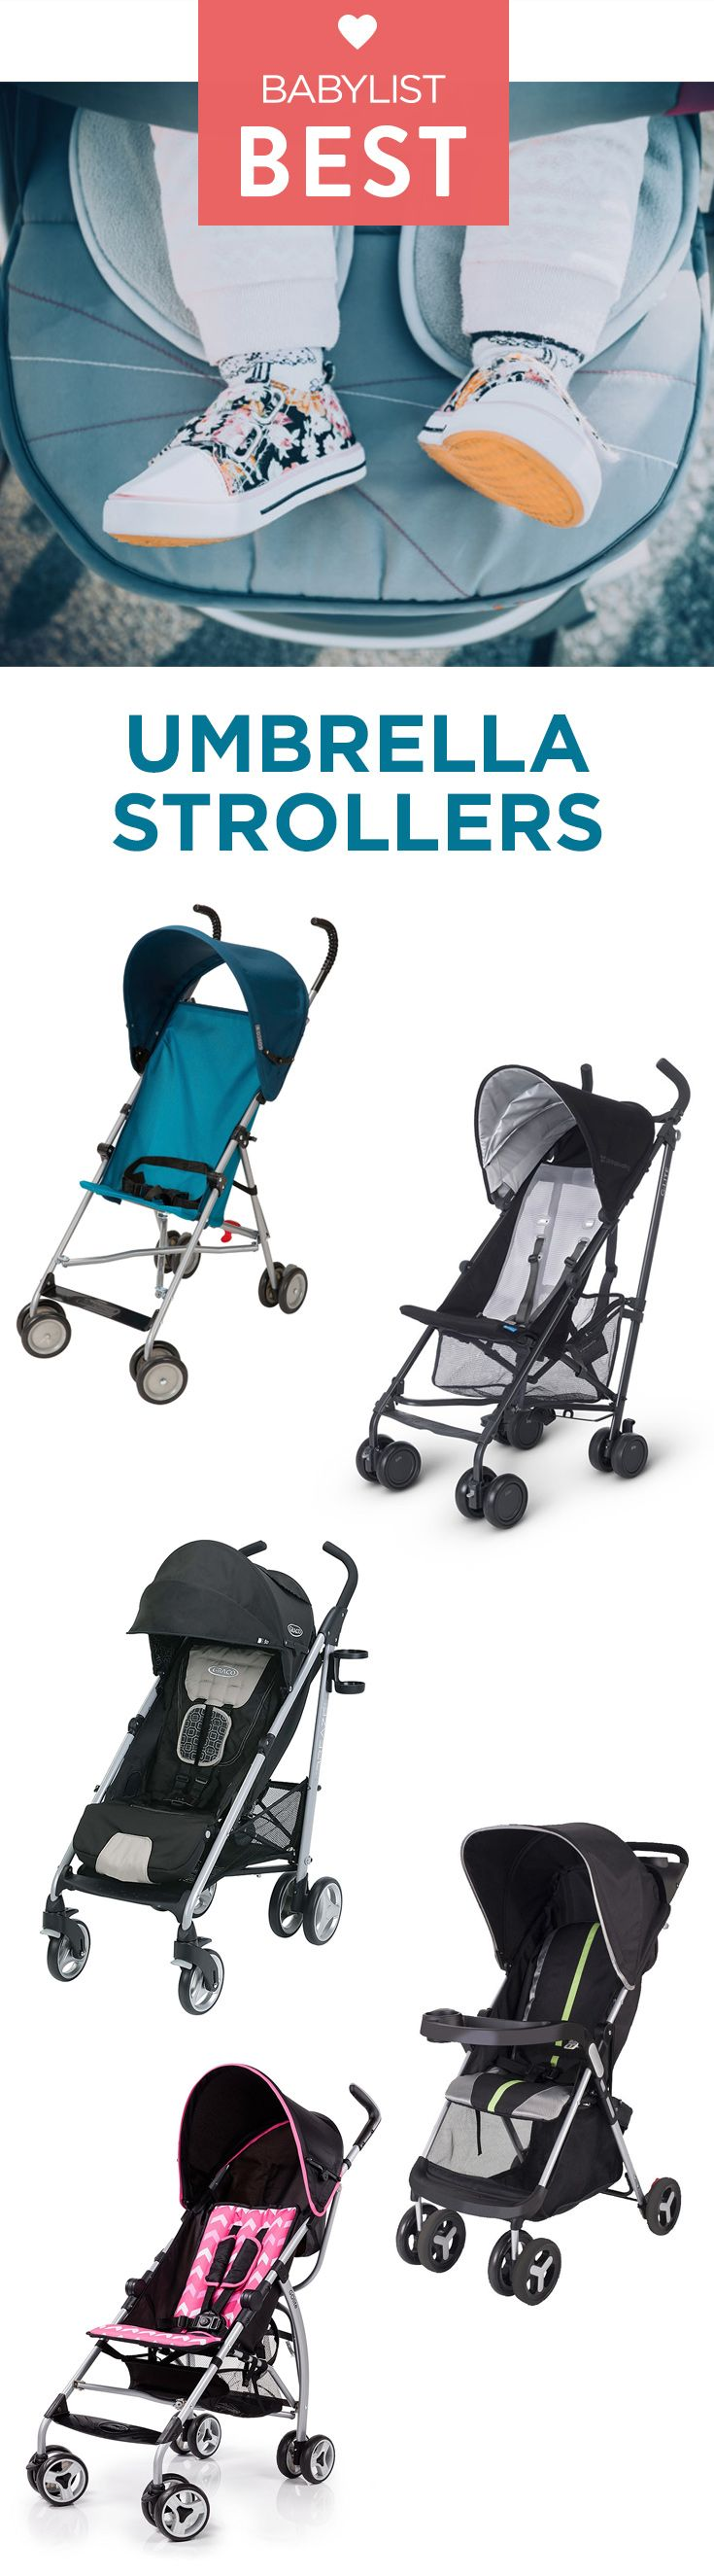 Check out the five best umbrella strollers according to thousands of Babylist parents.